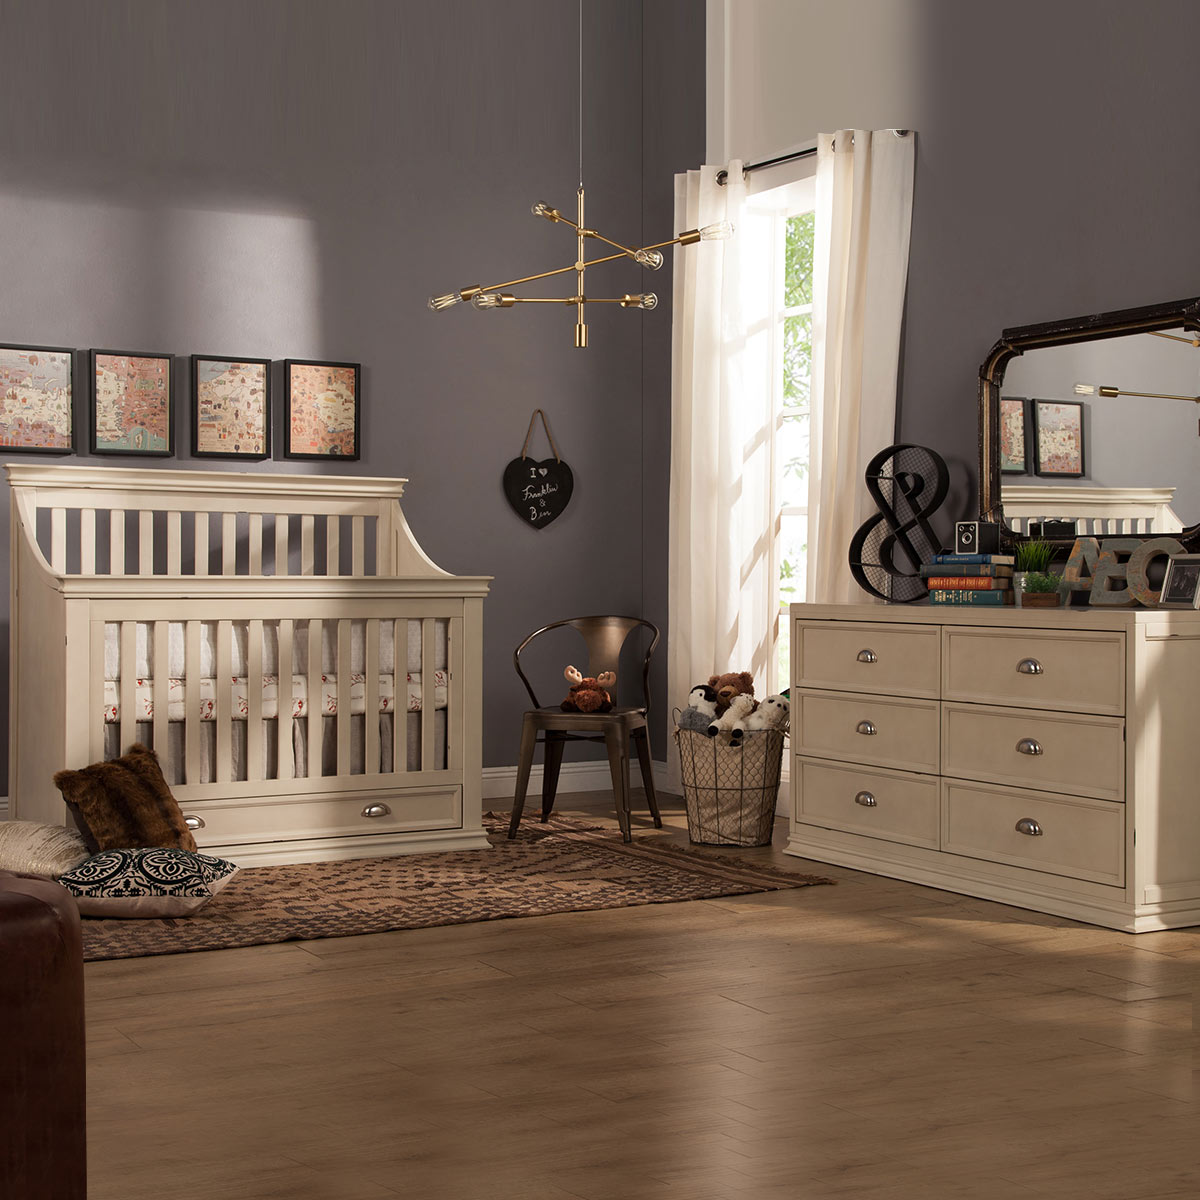 Franklin U0026 Ben Mason 2 Piece Nursery Set   4 In 1 Convertible Crib And  Double Wide Dresser In Distressed White FREE SHIPPING